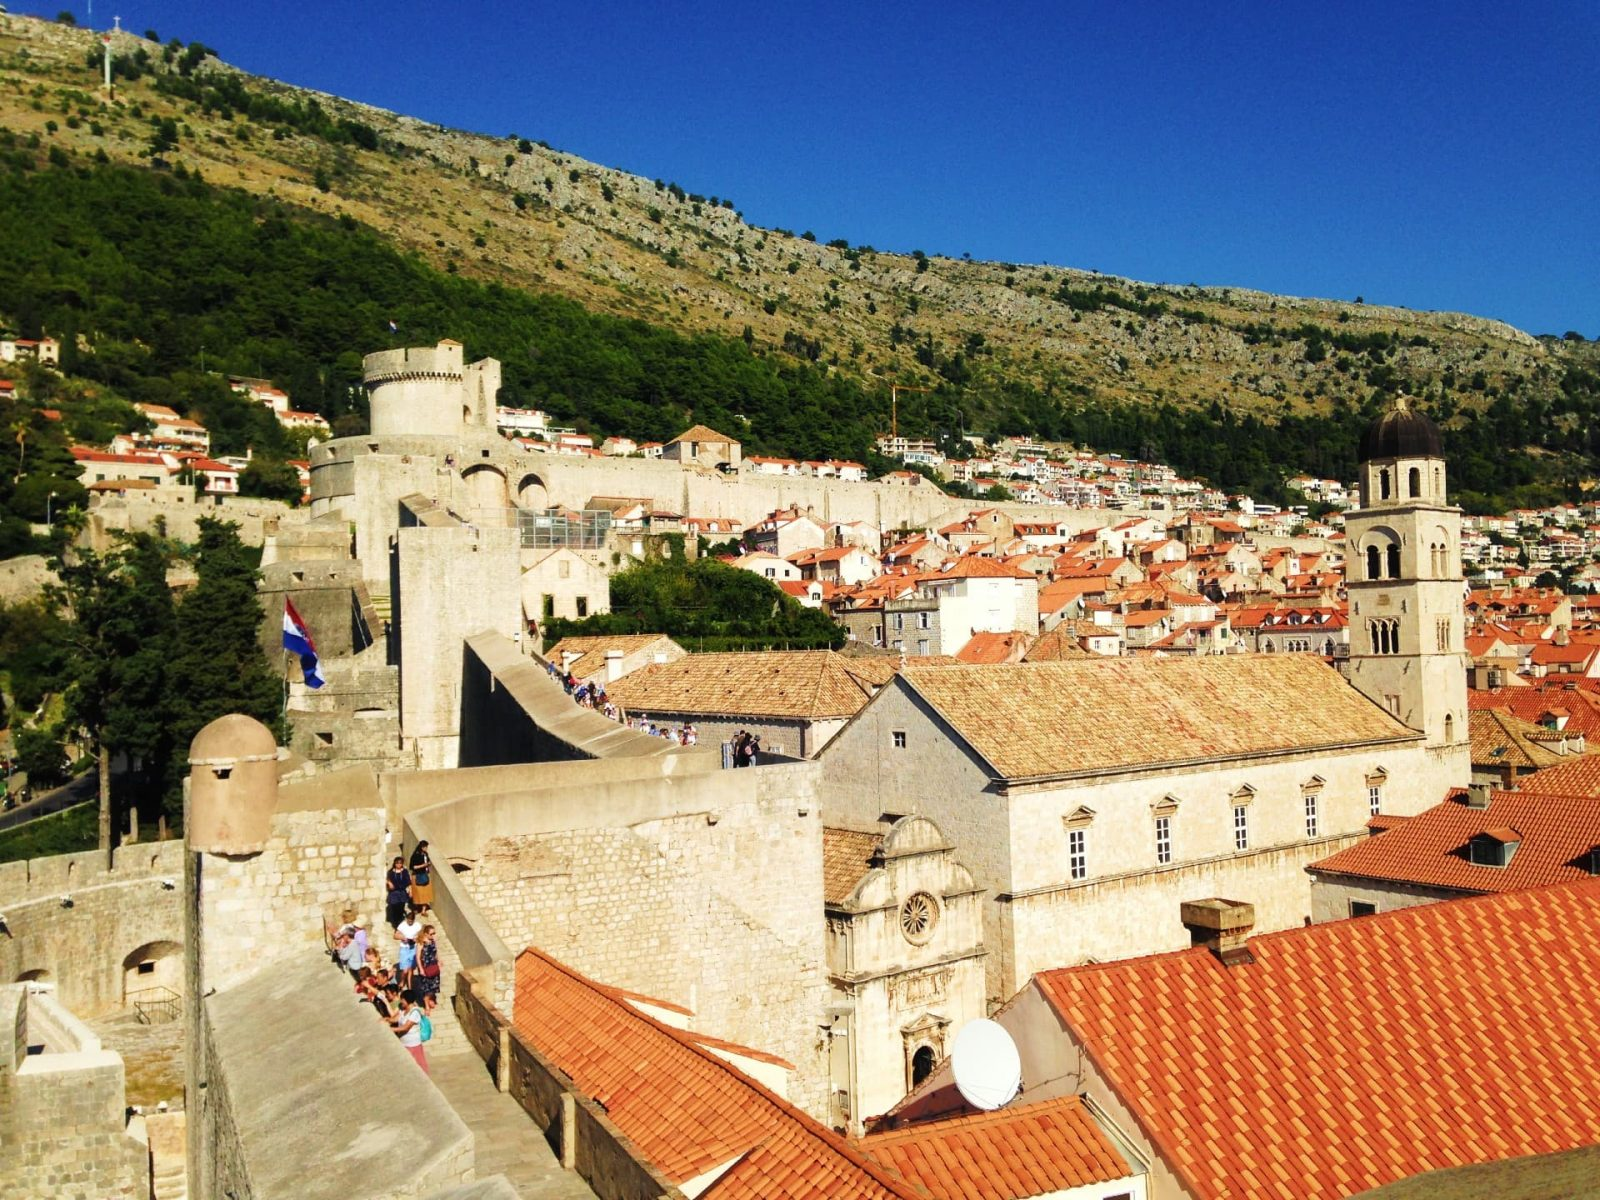 The city walls - Best things to do in Dubrovnik, Croatia